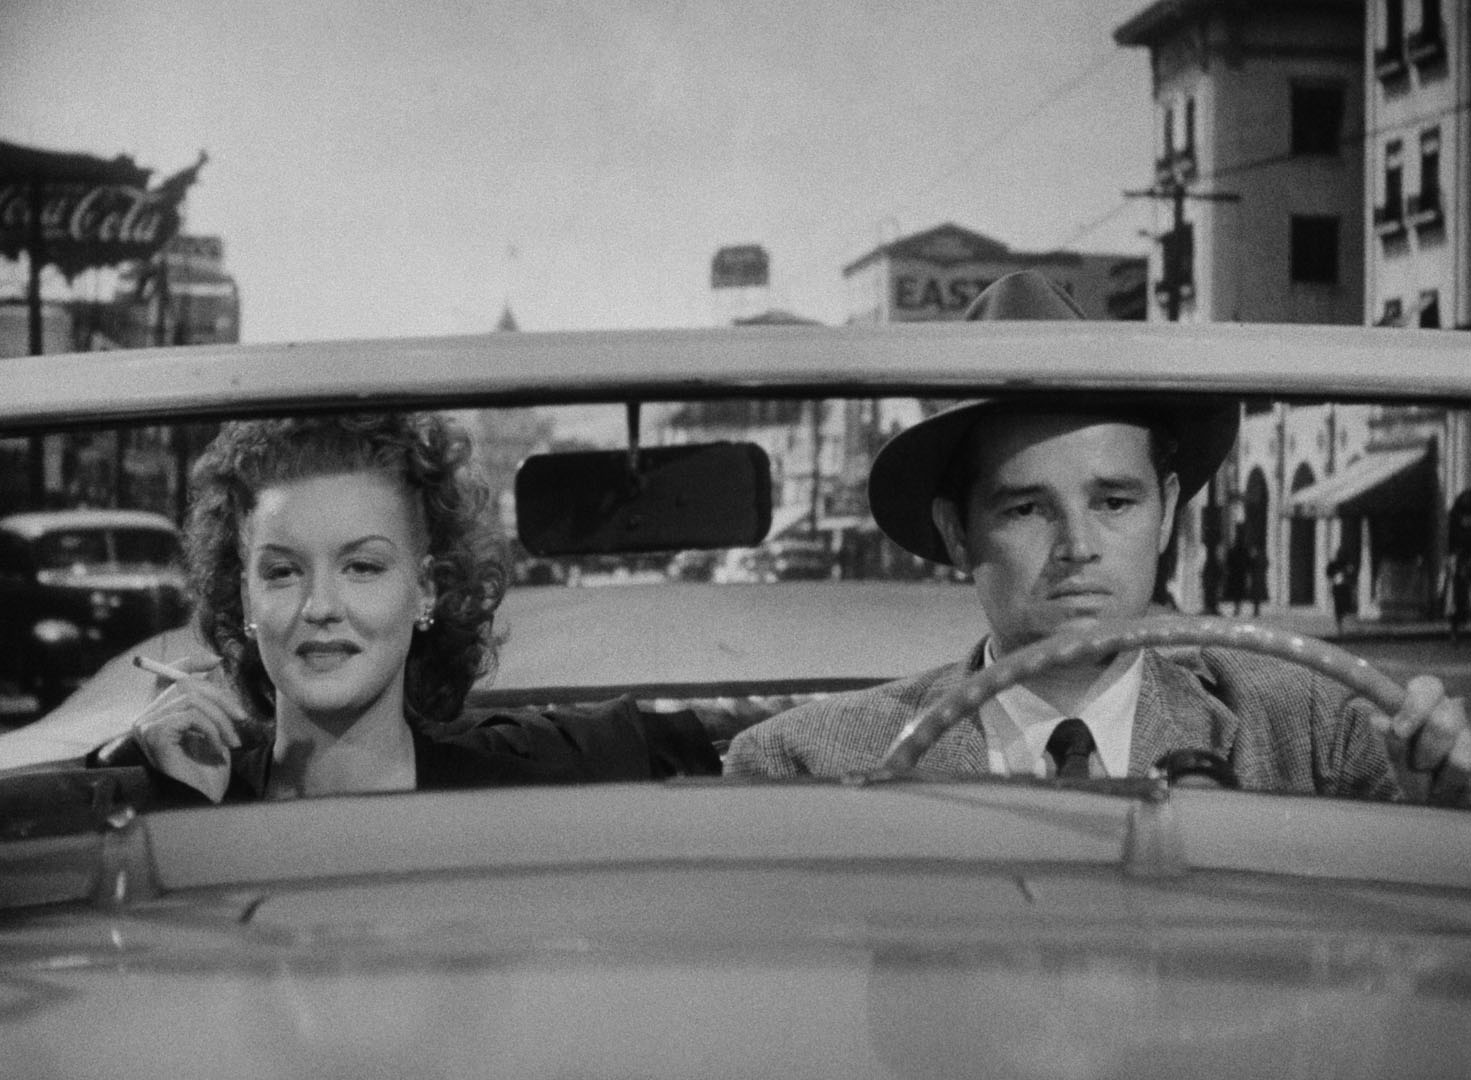 Al and Vera (Ann Savage) drive discontentedly.